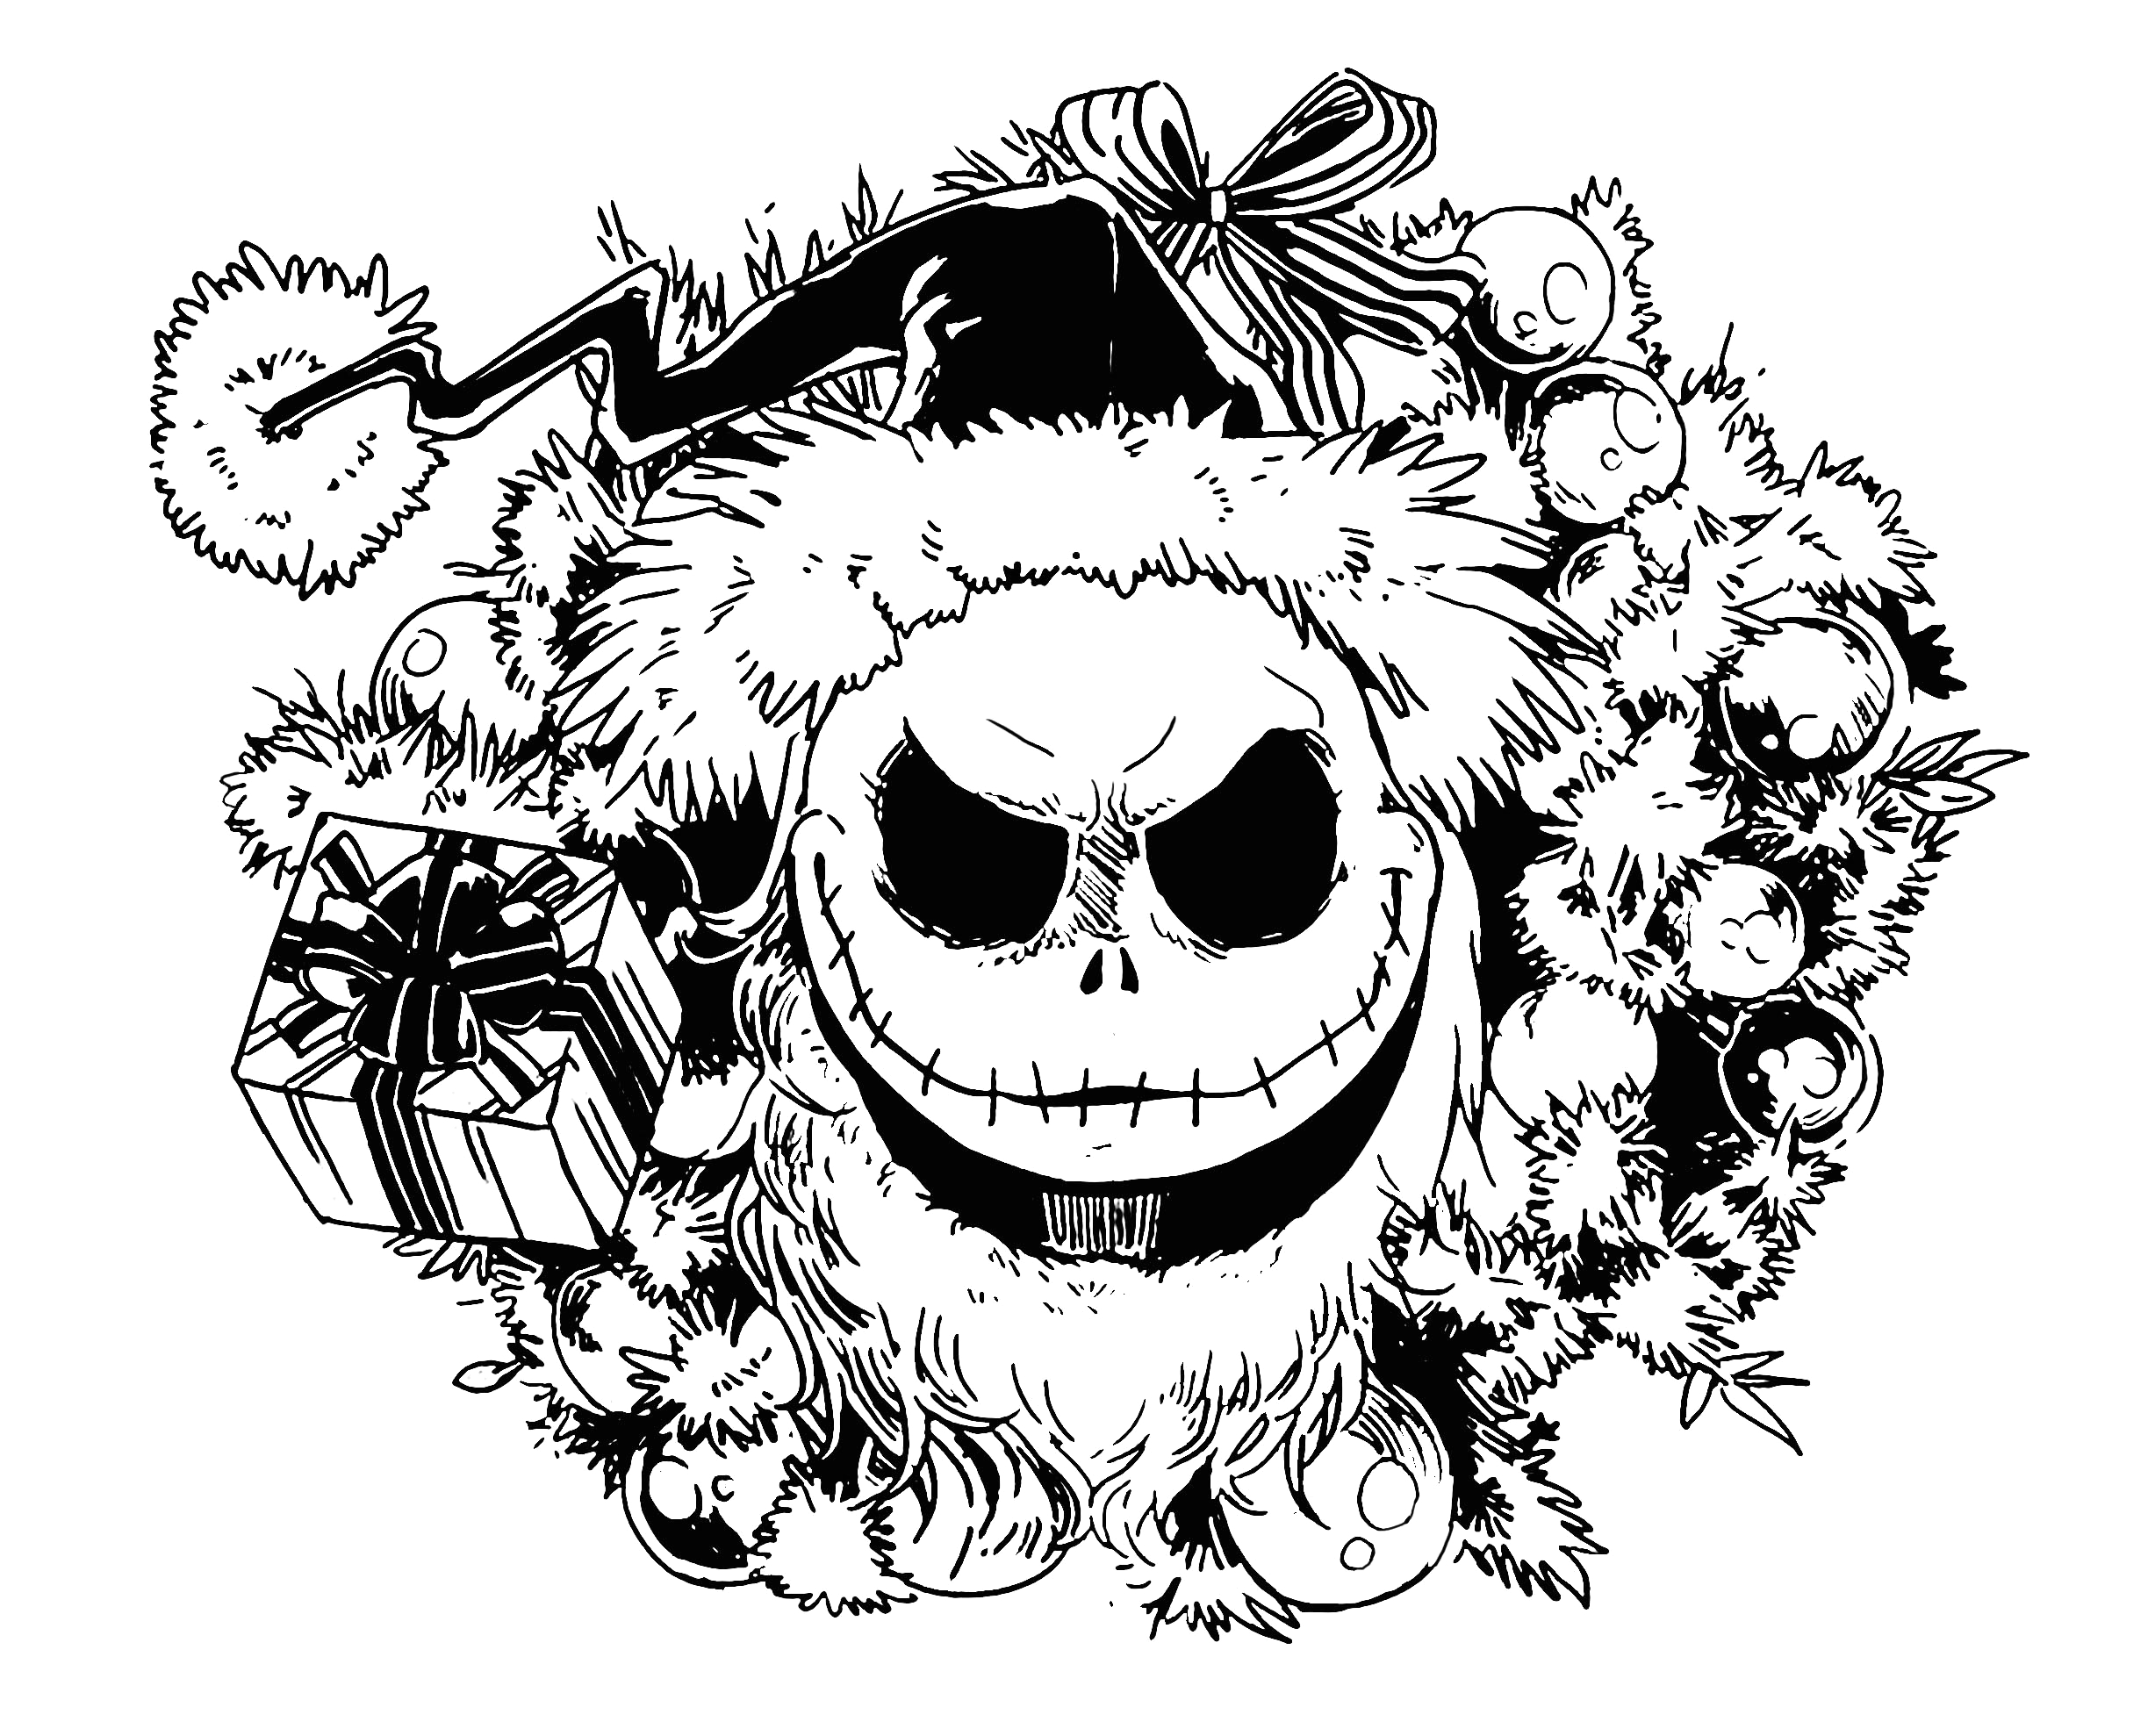 Free Nightmare before Christmas Coloring Pages Printable Nighmare before Christmas Christmas Adult Coloring Pages